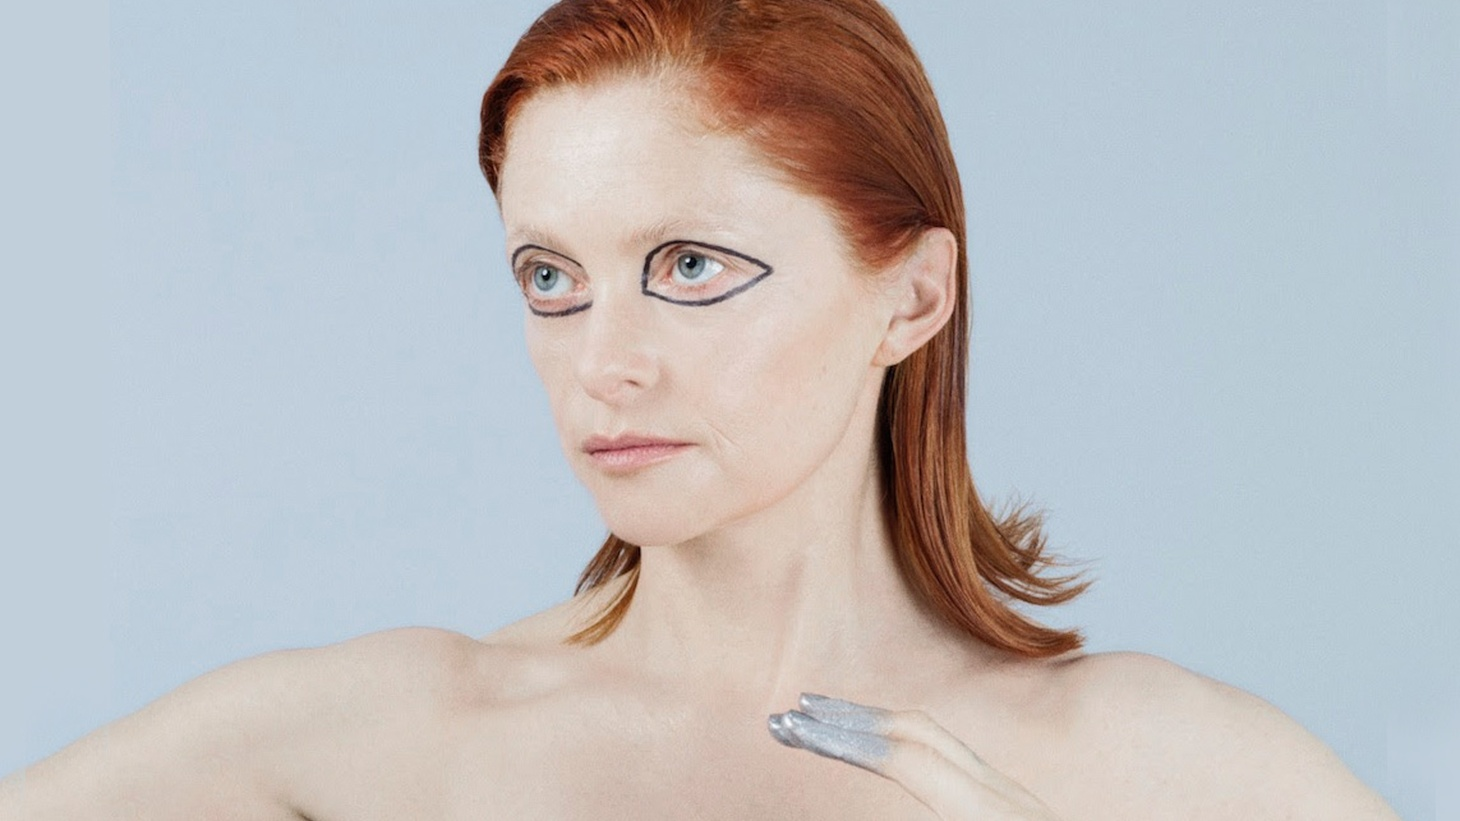 Goldfrapp songs have a distinctive signature that makes keeping still difficult.